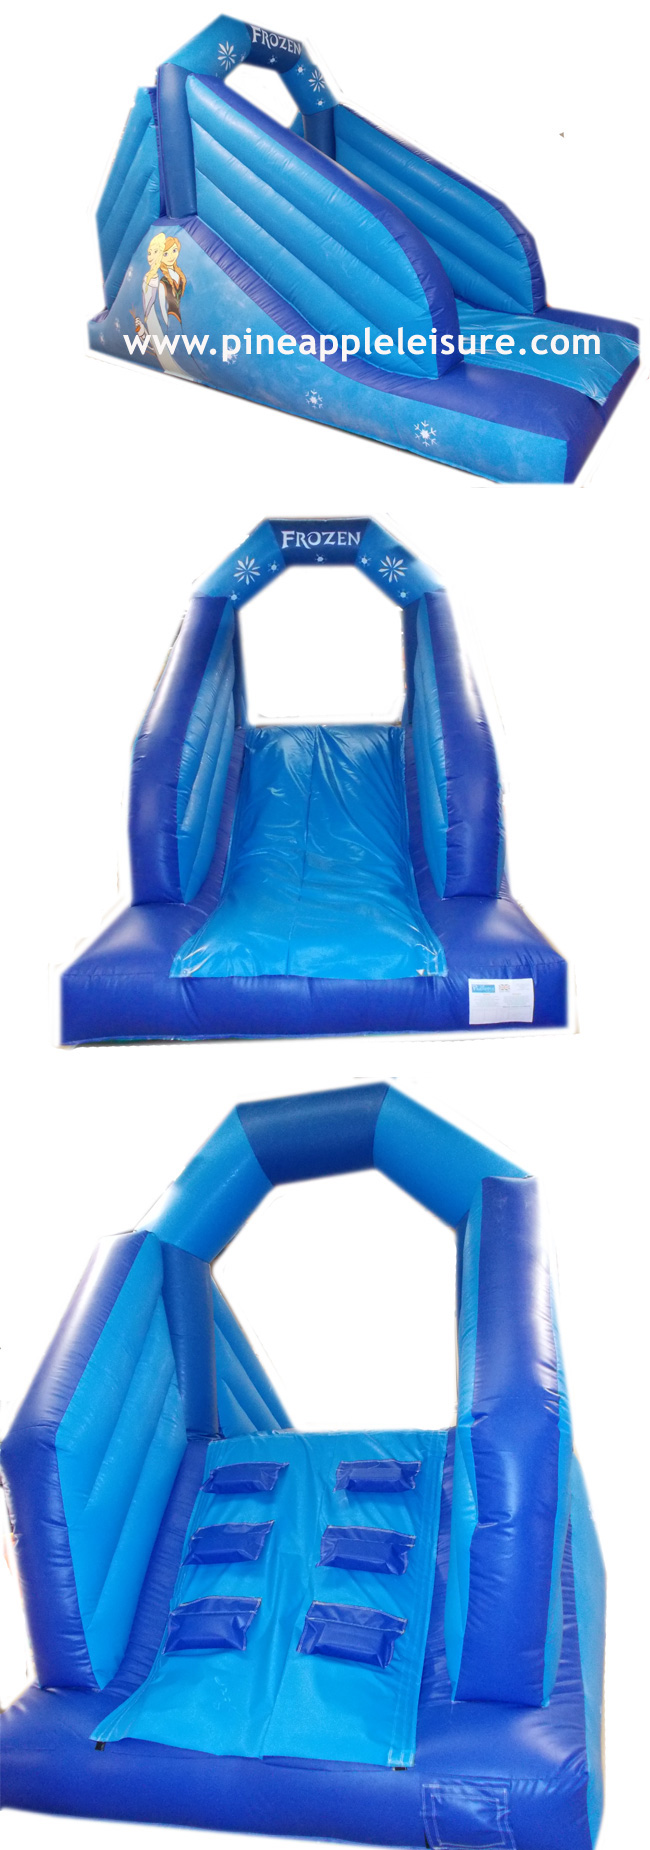 Bouncy Castle Sales - BC331 - Bouncy Inflatable for sale